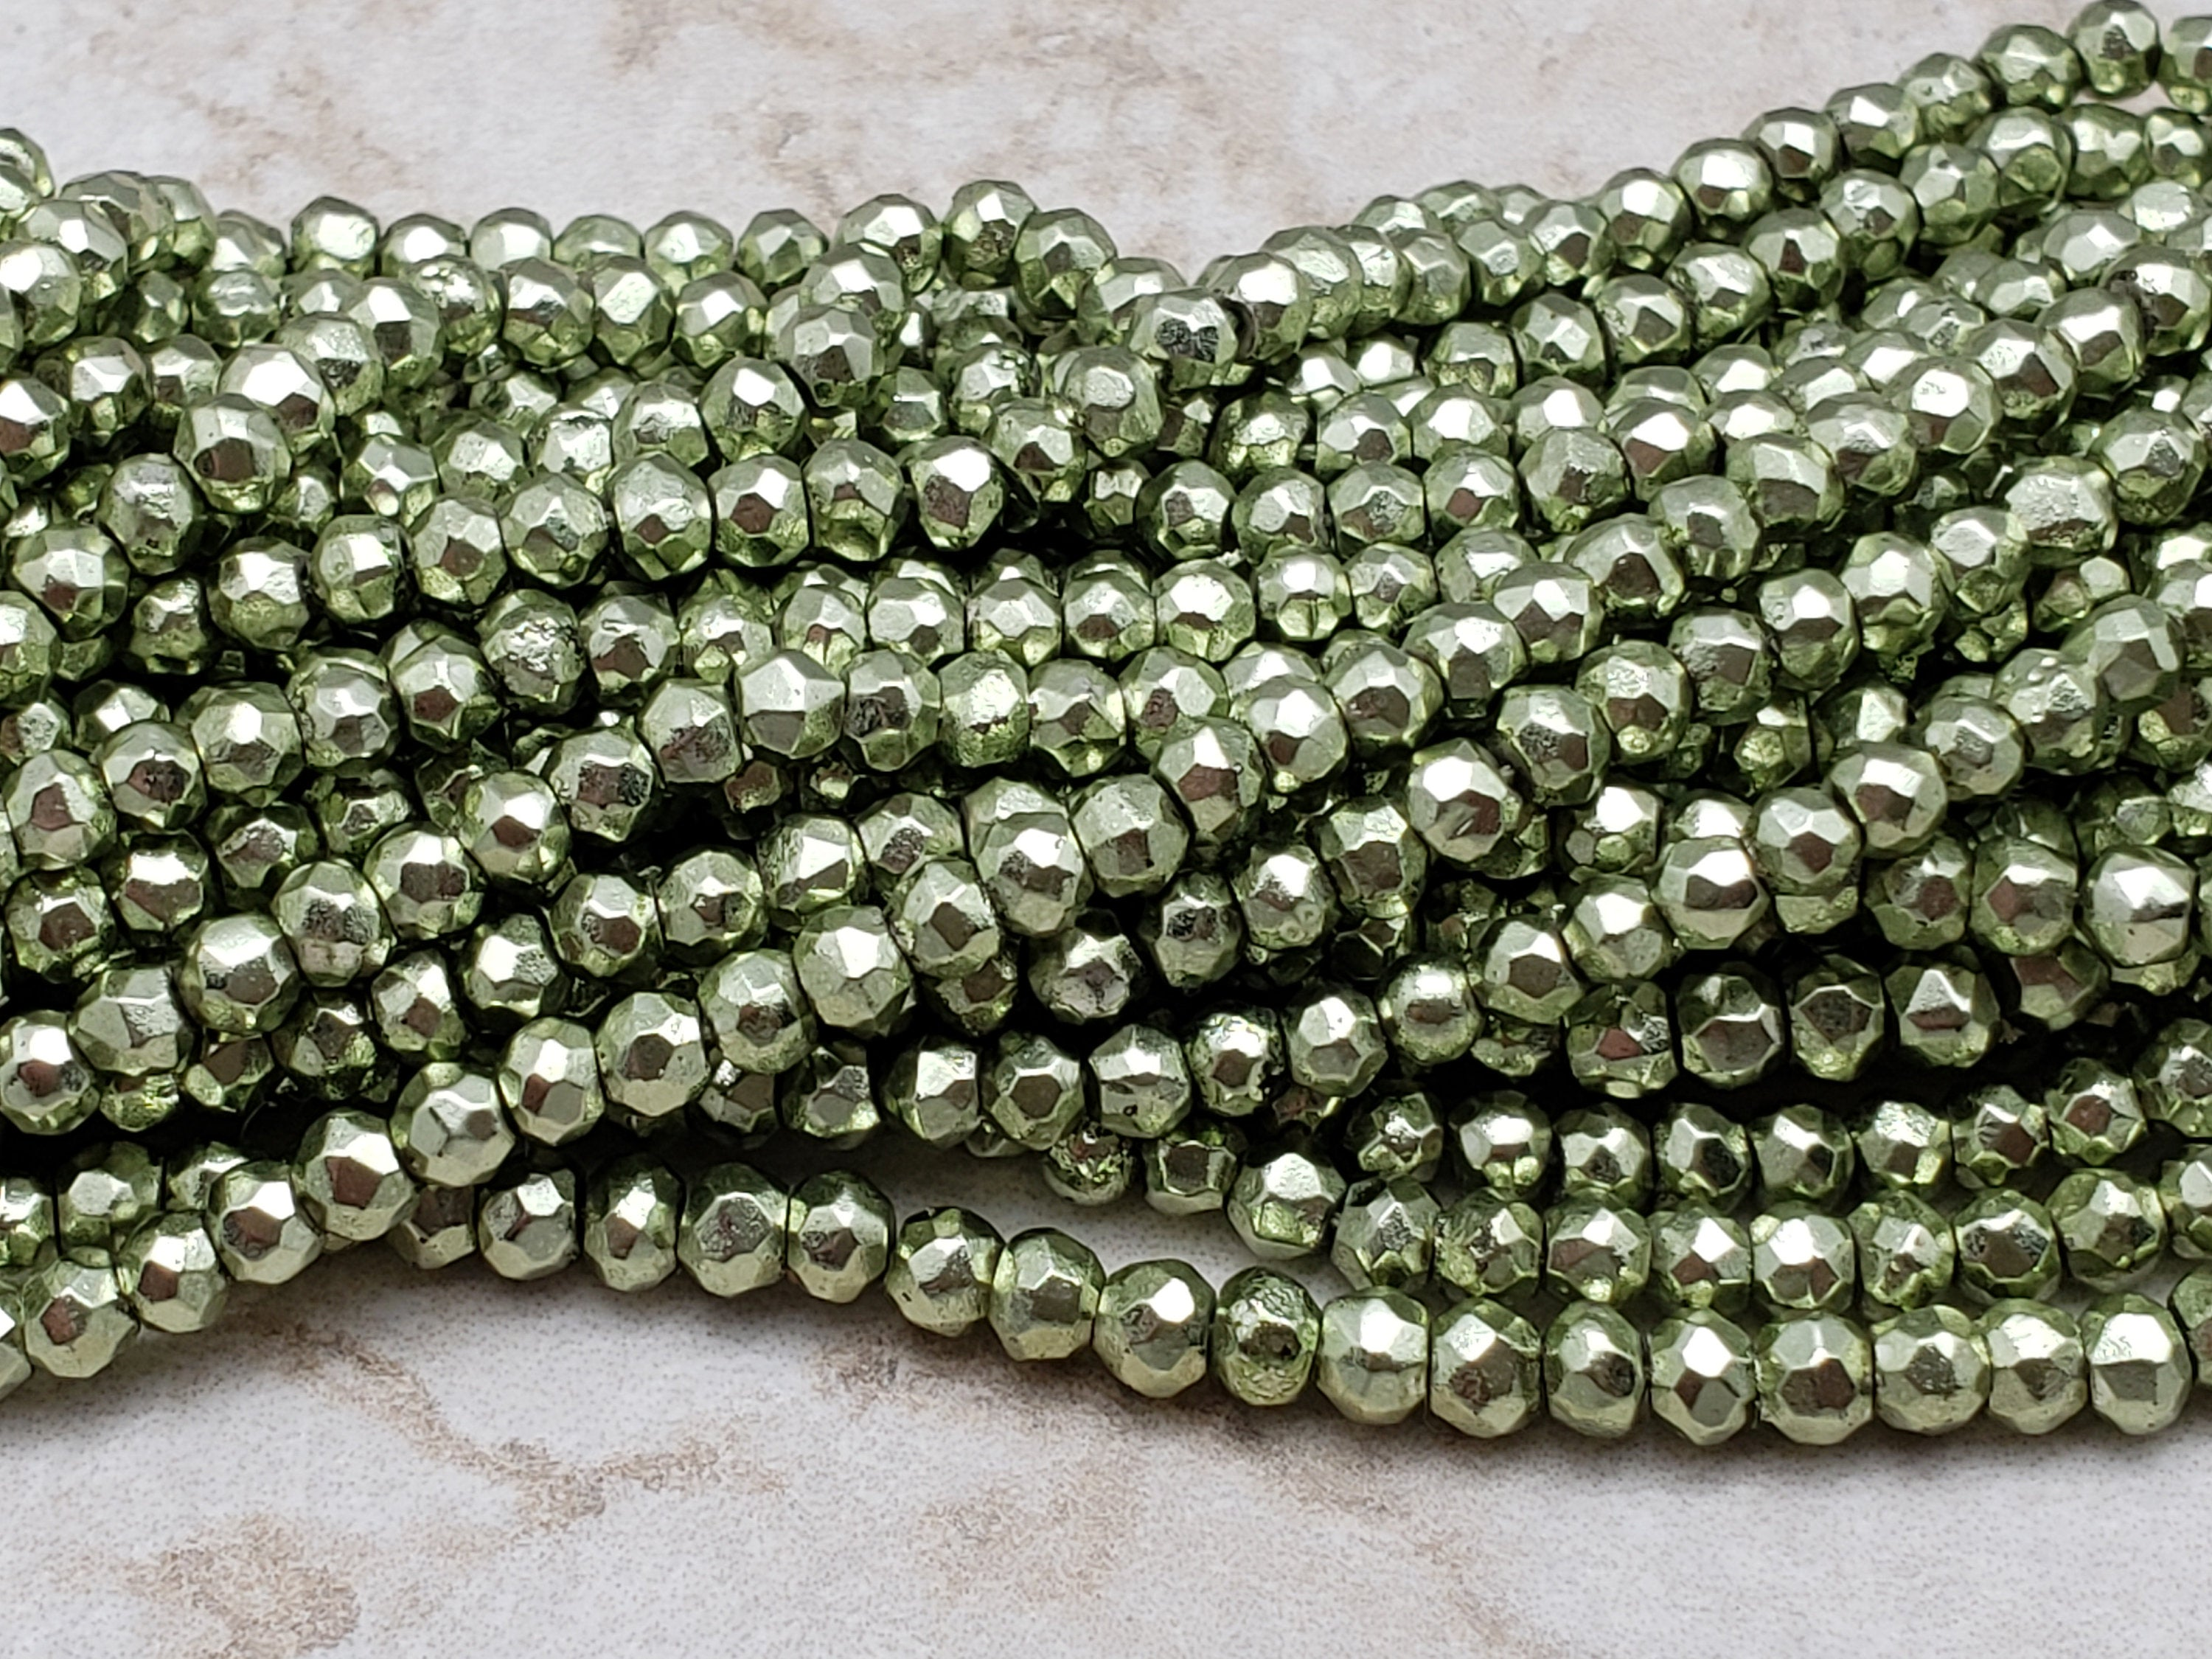 3.5mm to 4mm Lime Green Pyrite Faceted Rondelles, 13 inch